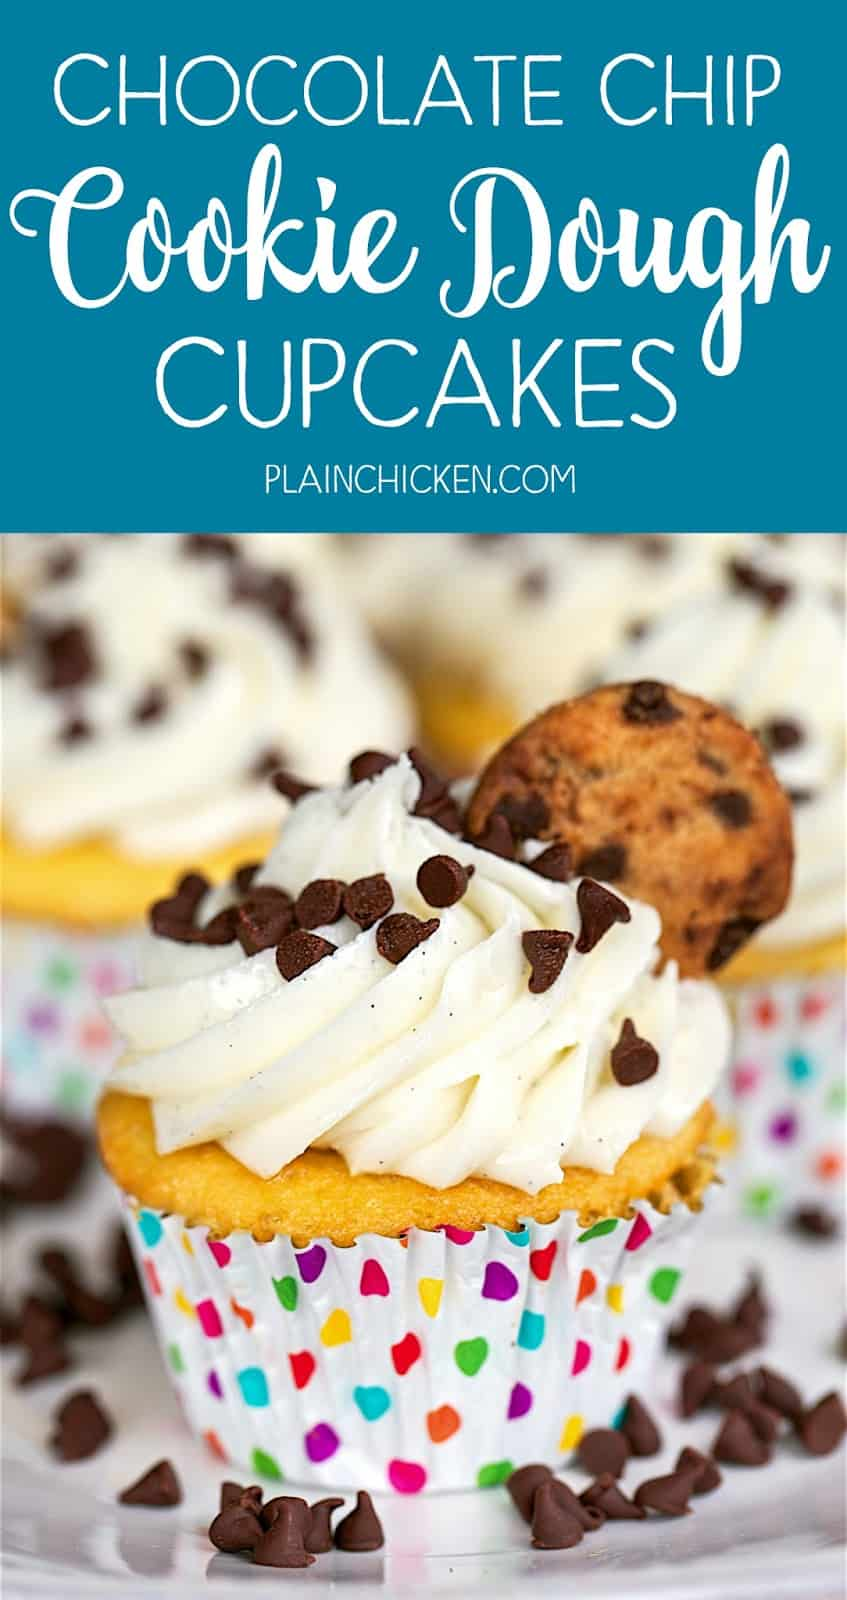 Chocolate Chip Cookie Dough Cupcakes - seriously the BEST cupcakes EVER! SO easy! Cake mix, refrigerated cookie dough and homemade buttercream. SO easy and they taste AMAZING! Easy and delicious dessert recipe!!